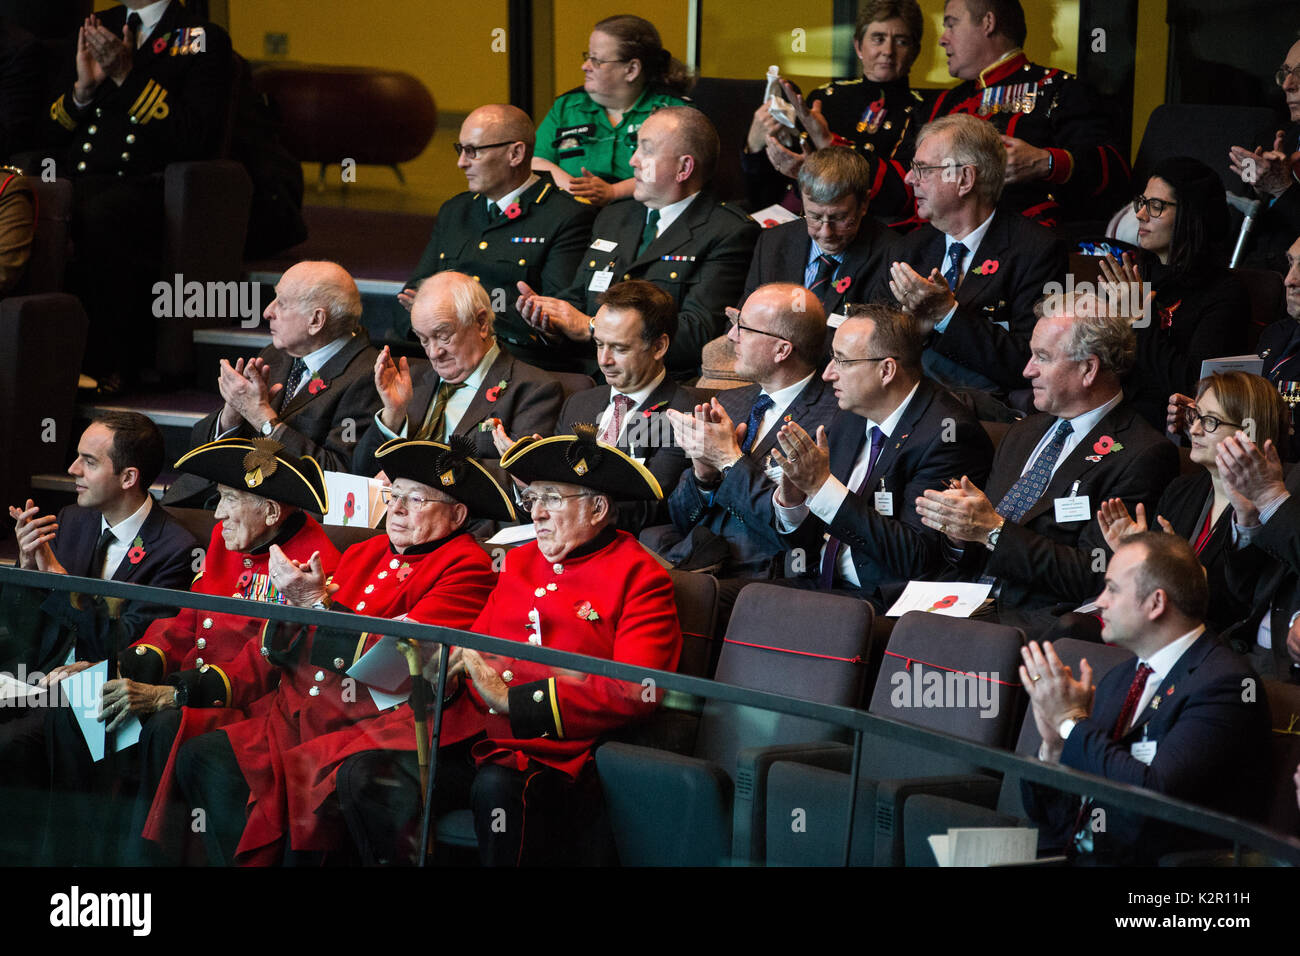 London, UK. 10th Nov, 2017. Chelsea Pensioners at the Annual Service of Remembrance at City Hall, which was attended by Mayor of London Sadiq Khan, Jennette Arnold OBE AM, Chair of the London Assembly, Members of Parliament, London Assembly Members, Greater London Authority staff, representatives from London Government and public service organisations, and members of the Armed Forces, to commemorate those who served and lost their lives in the two world wars and other conflicts. Credit: Mark Kerrison/Alamy Live News - Stock Image